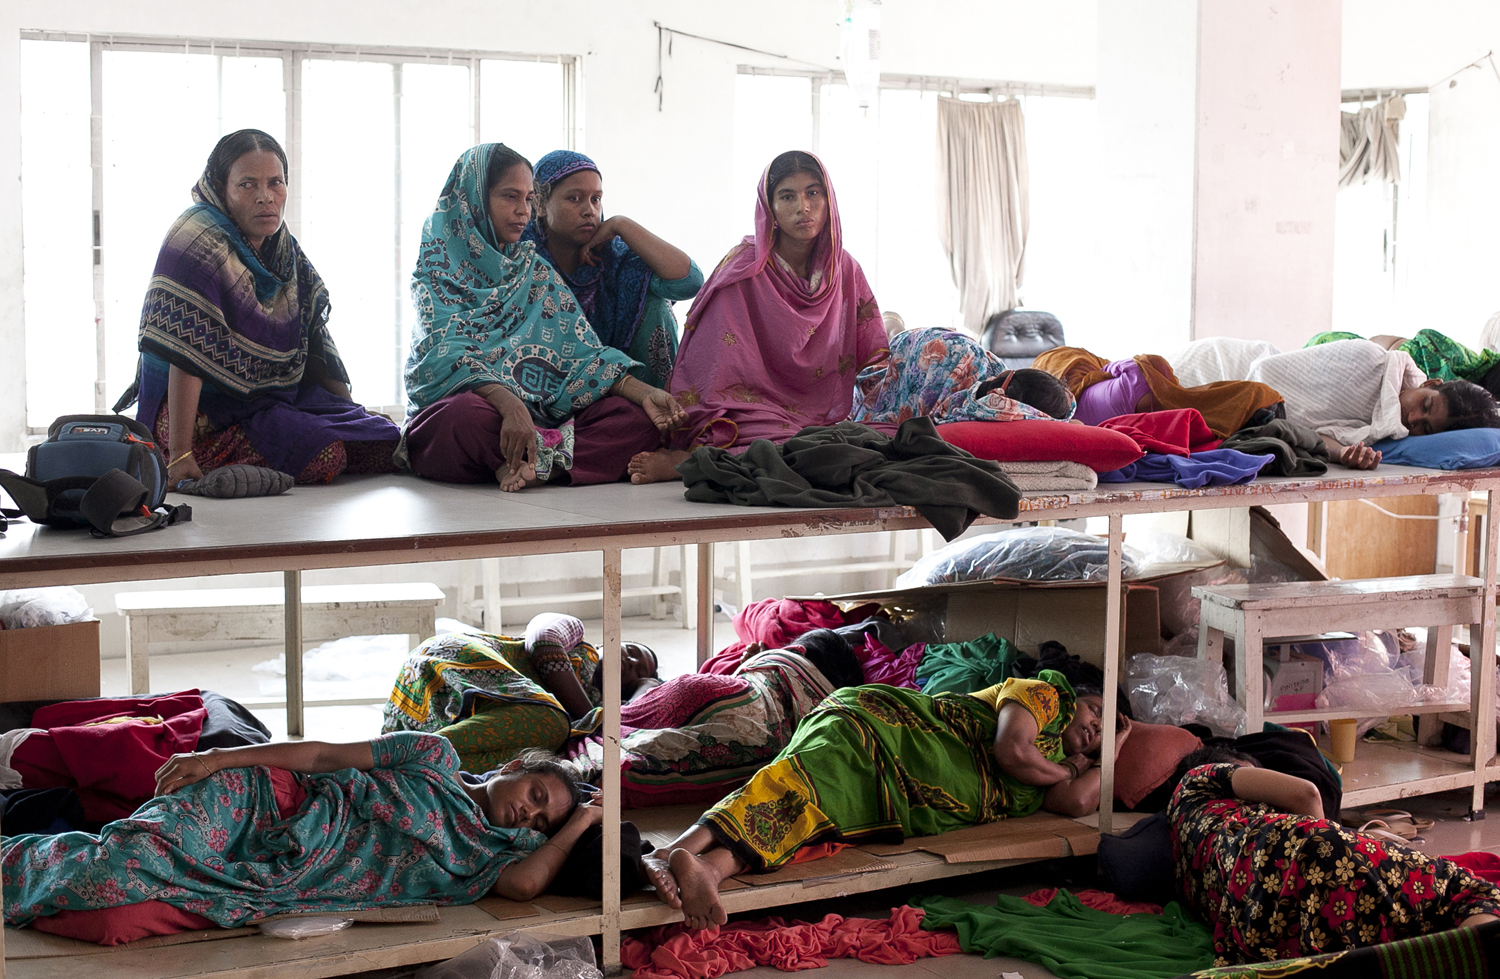 Garment Workers Go On Hunger Strike Over Unpaid Wages